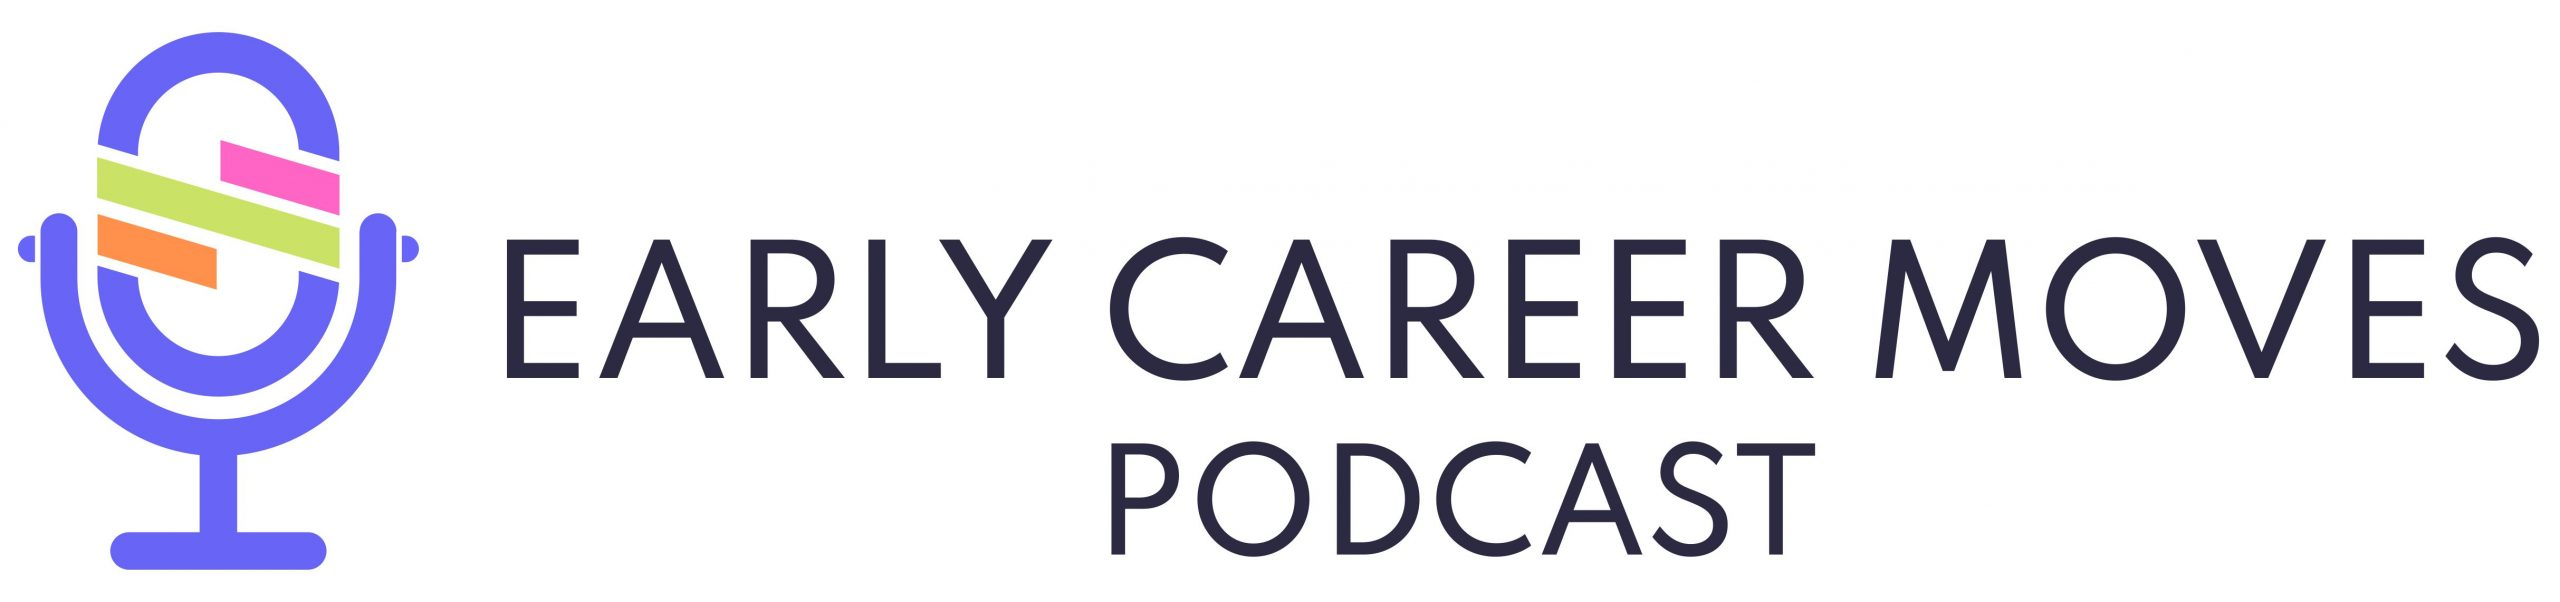 The Early Career Moves Podcast